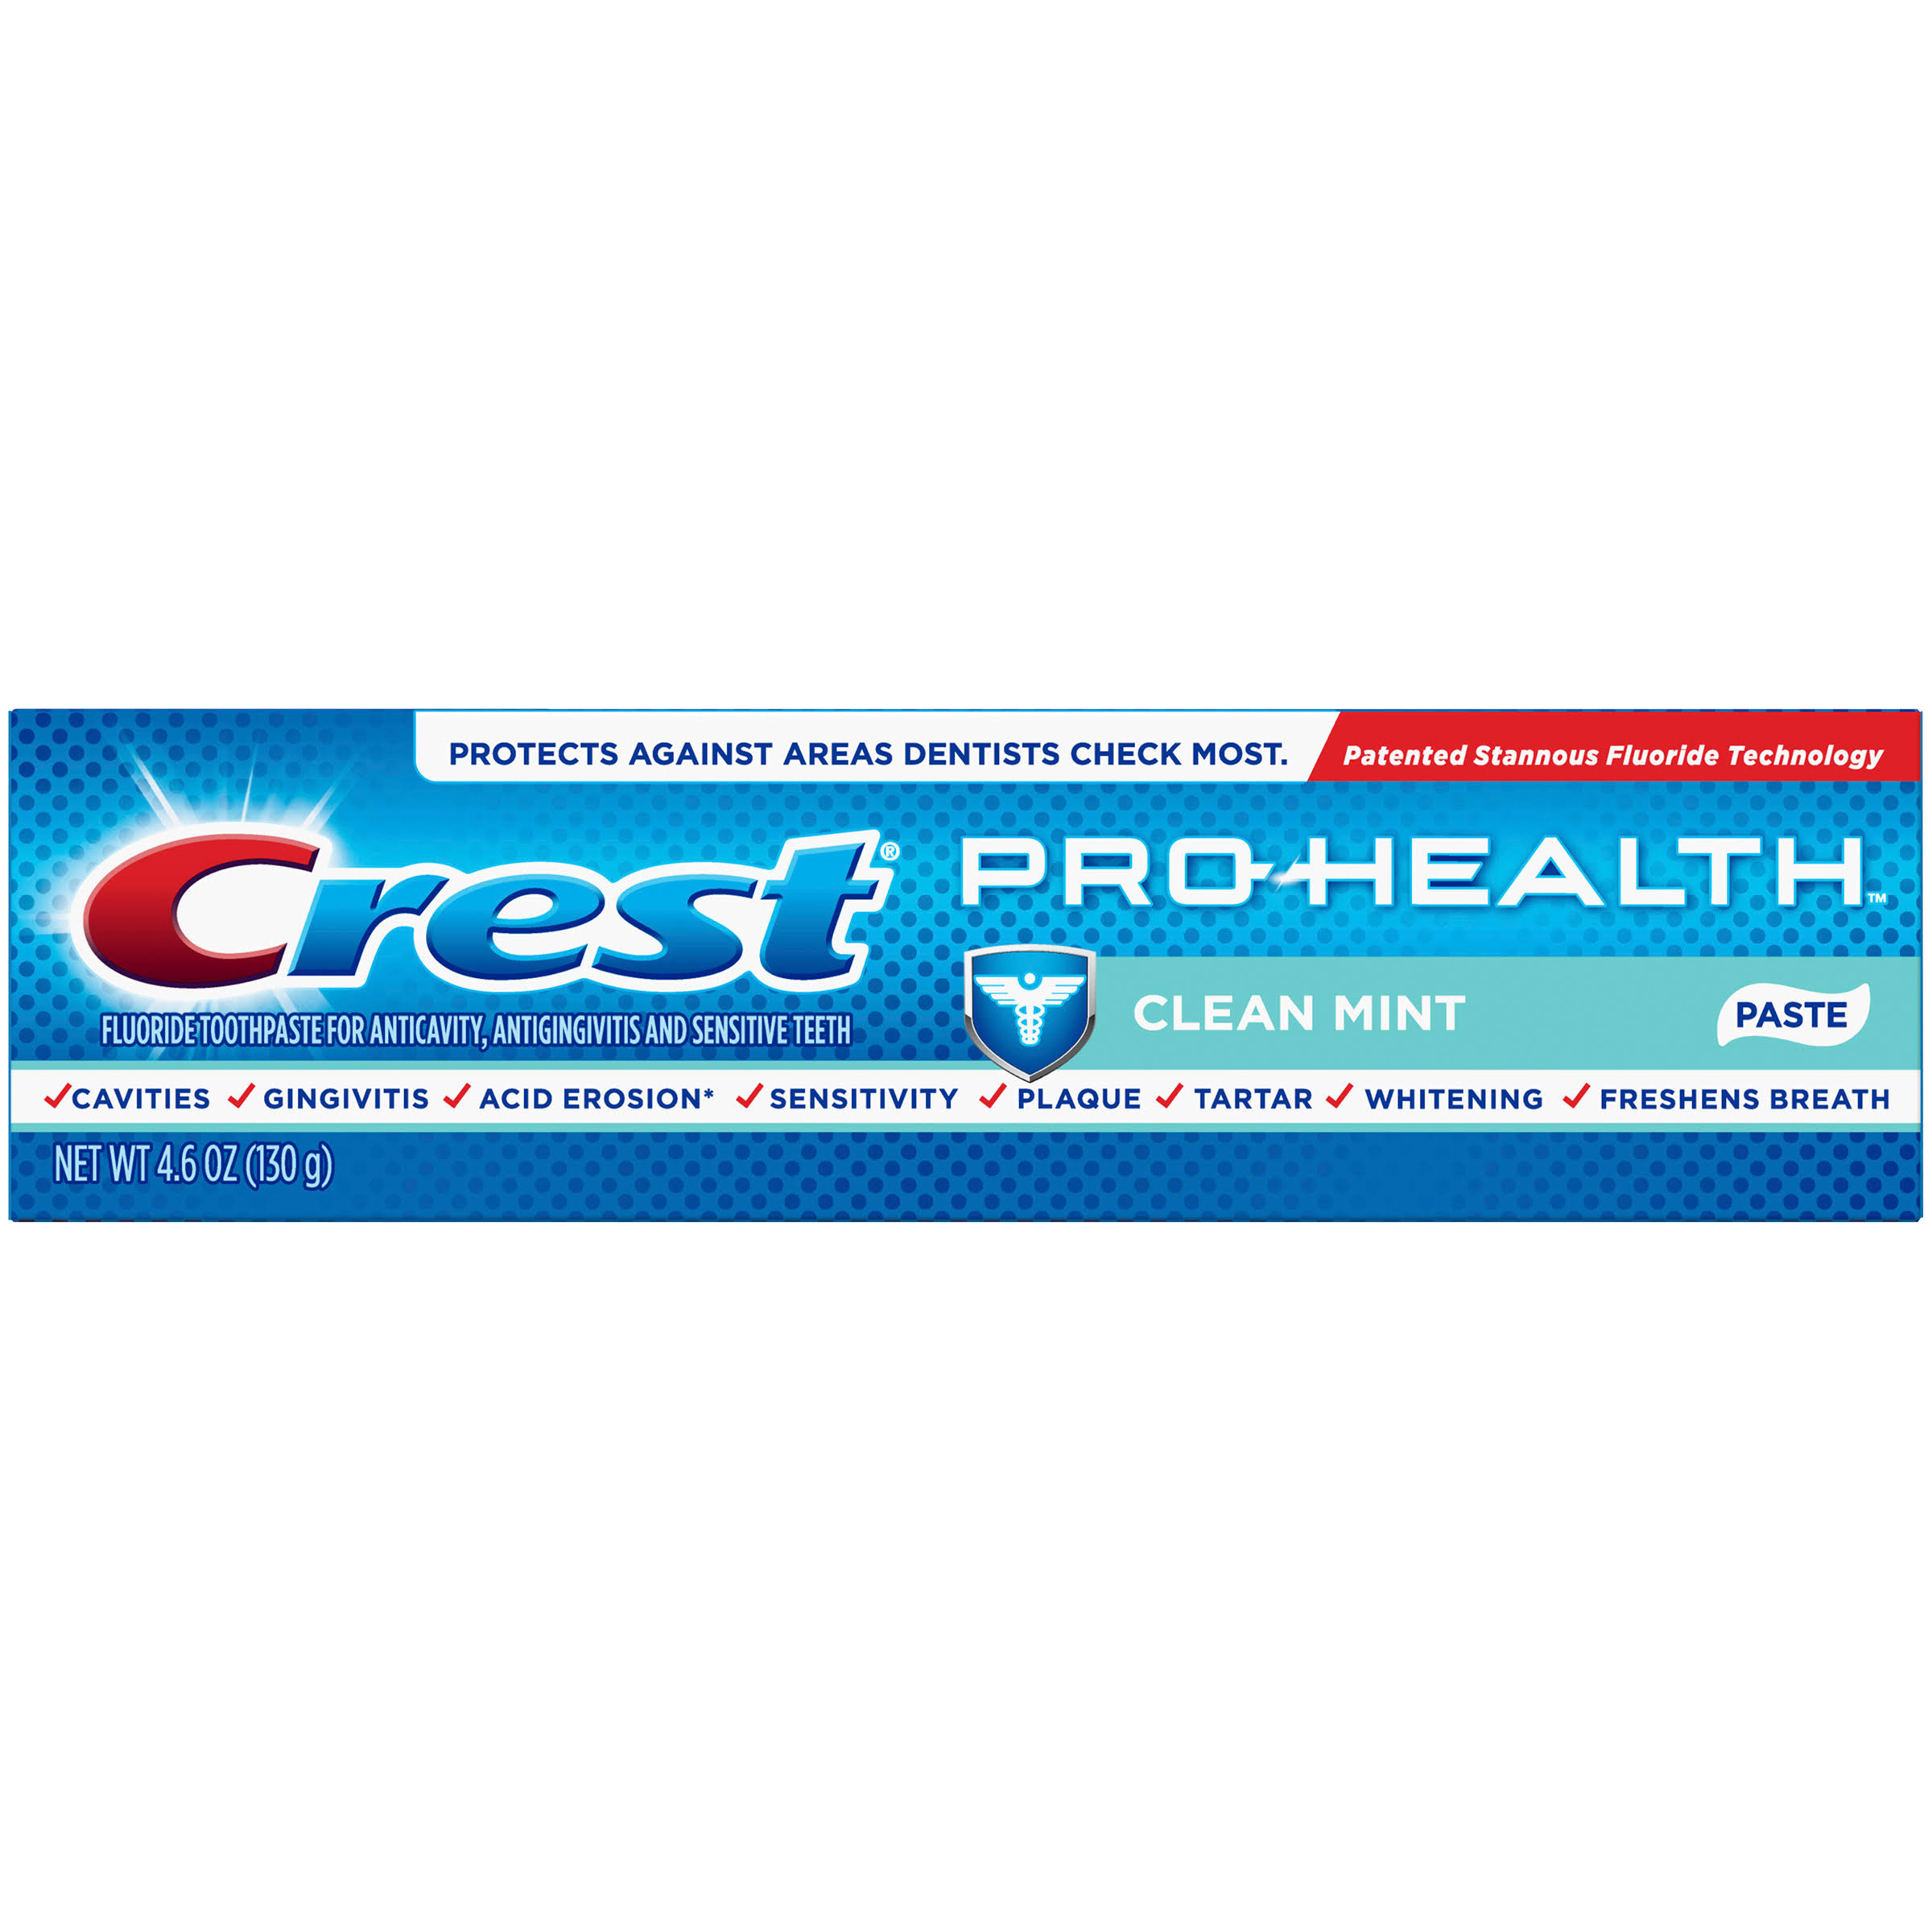 Crest Pro Health Fluoride Toothpaste - Clean Mint, 4.6oz